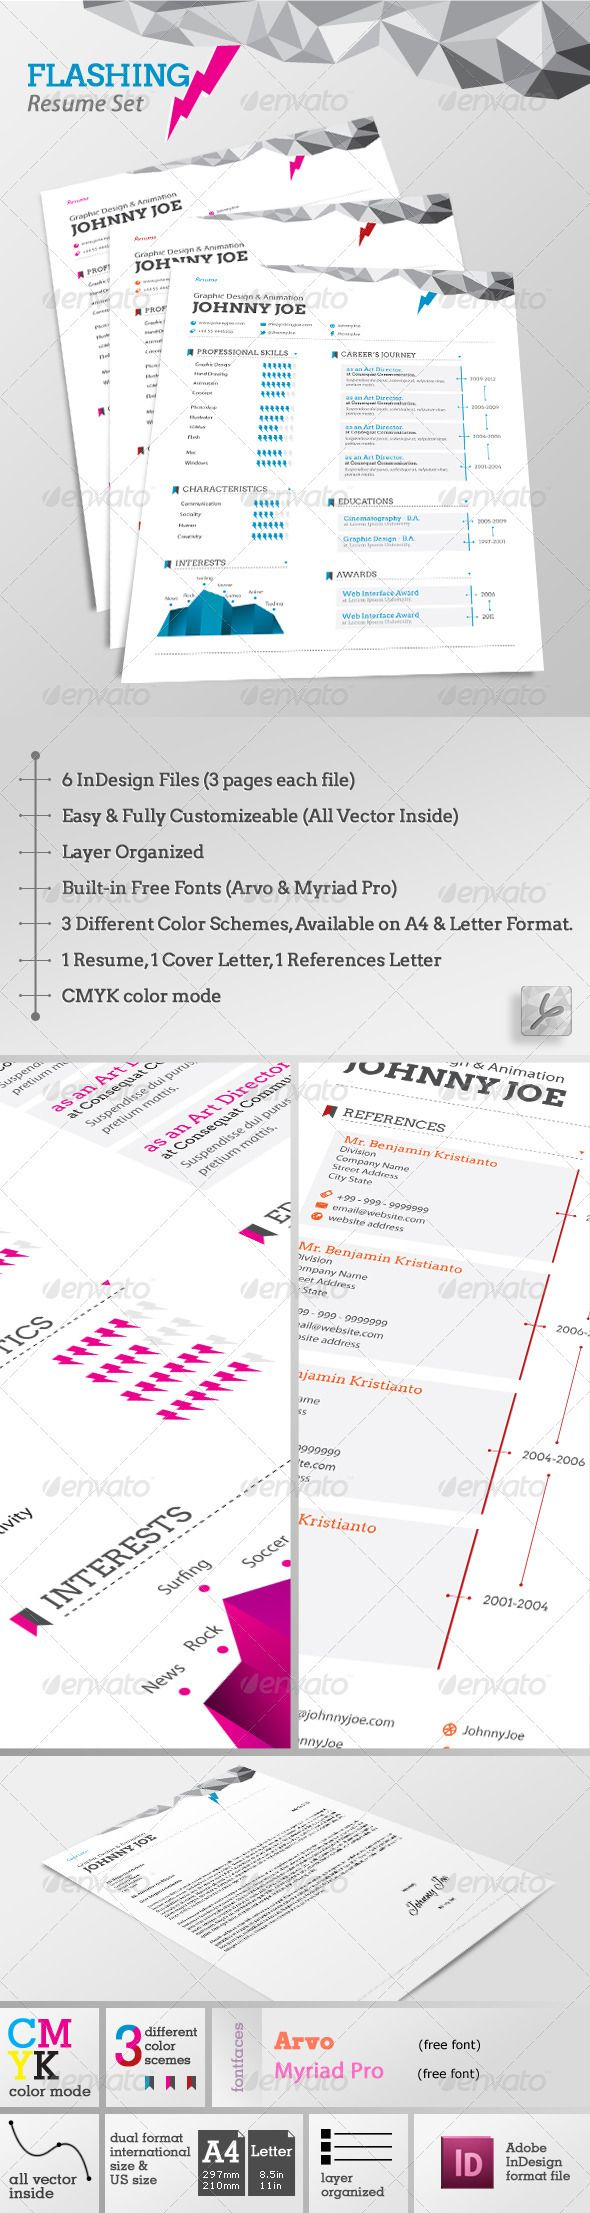 Lovely 1 Year Experienced Java Resume Small 12 Column Grid Template Shaped 12 Hour Schedule Template 12 Inch Ruler Template Young 1st Job Resume Objective Green2 Page Resume Format 171 Best Images About Print Templates On Pinterest | Fonts, Flyer ..